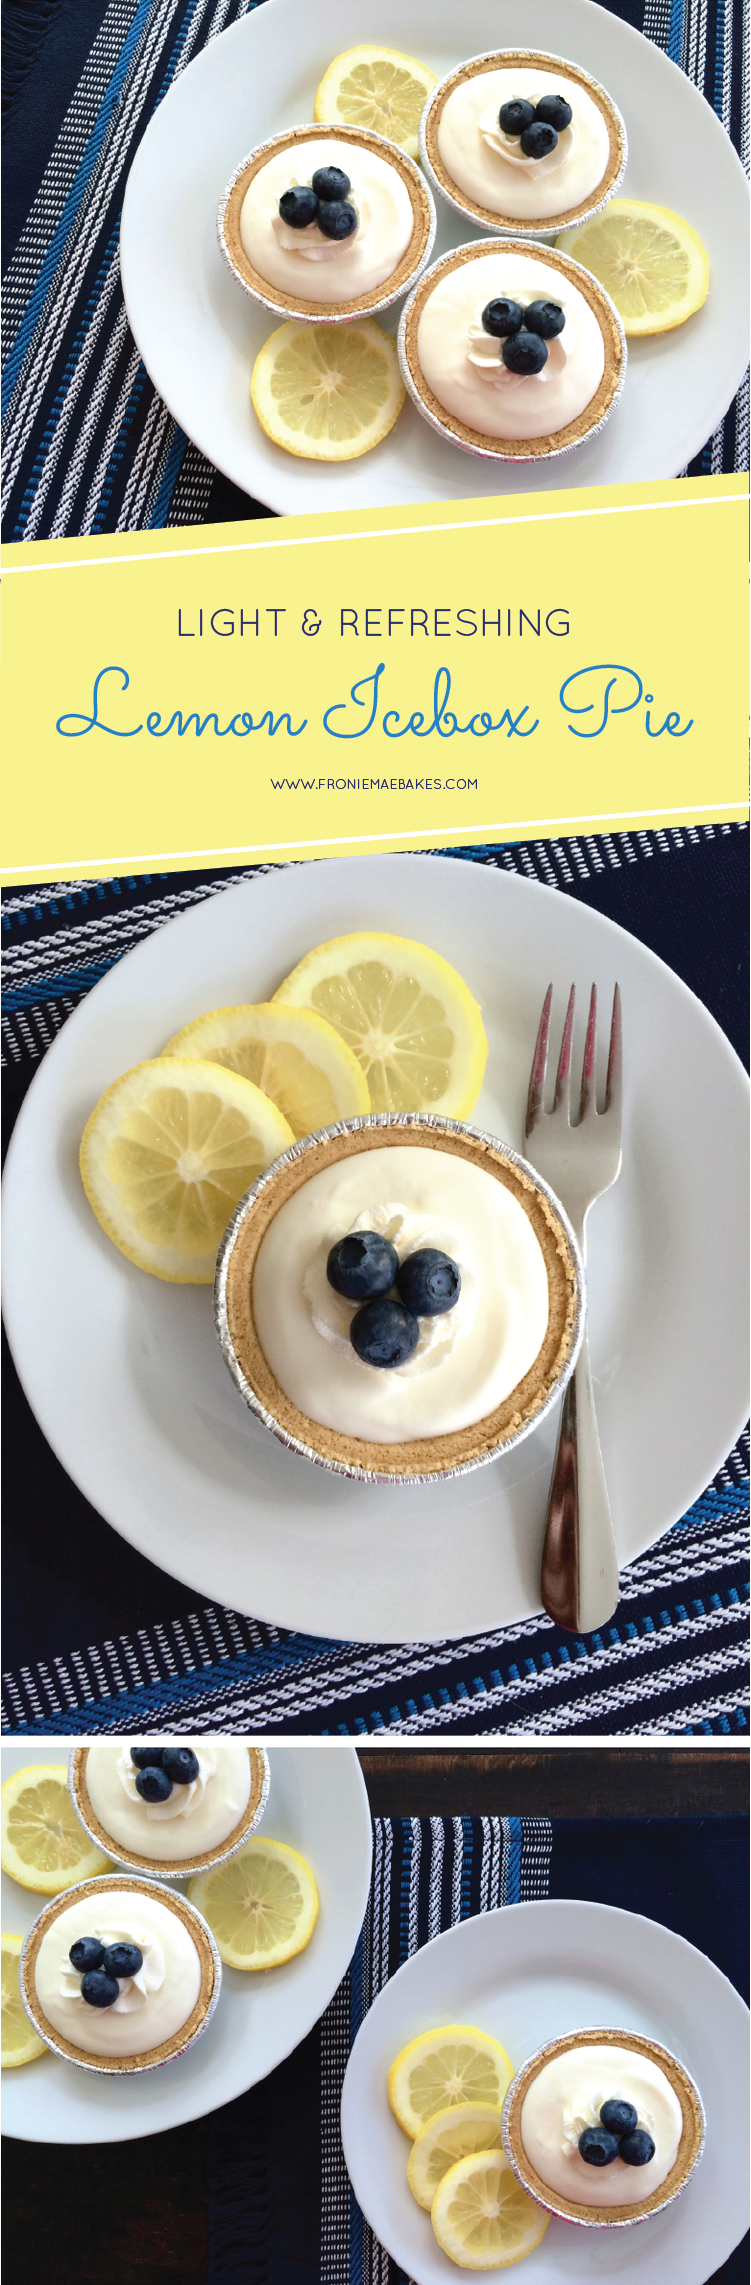 Make these small, but delicious Lemon Icebox Pies today. The perfect balance of sweet and tart. Recipe can be found at www.FronieMaeBakes.com